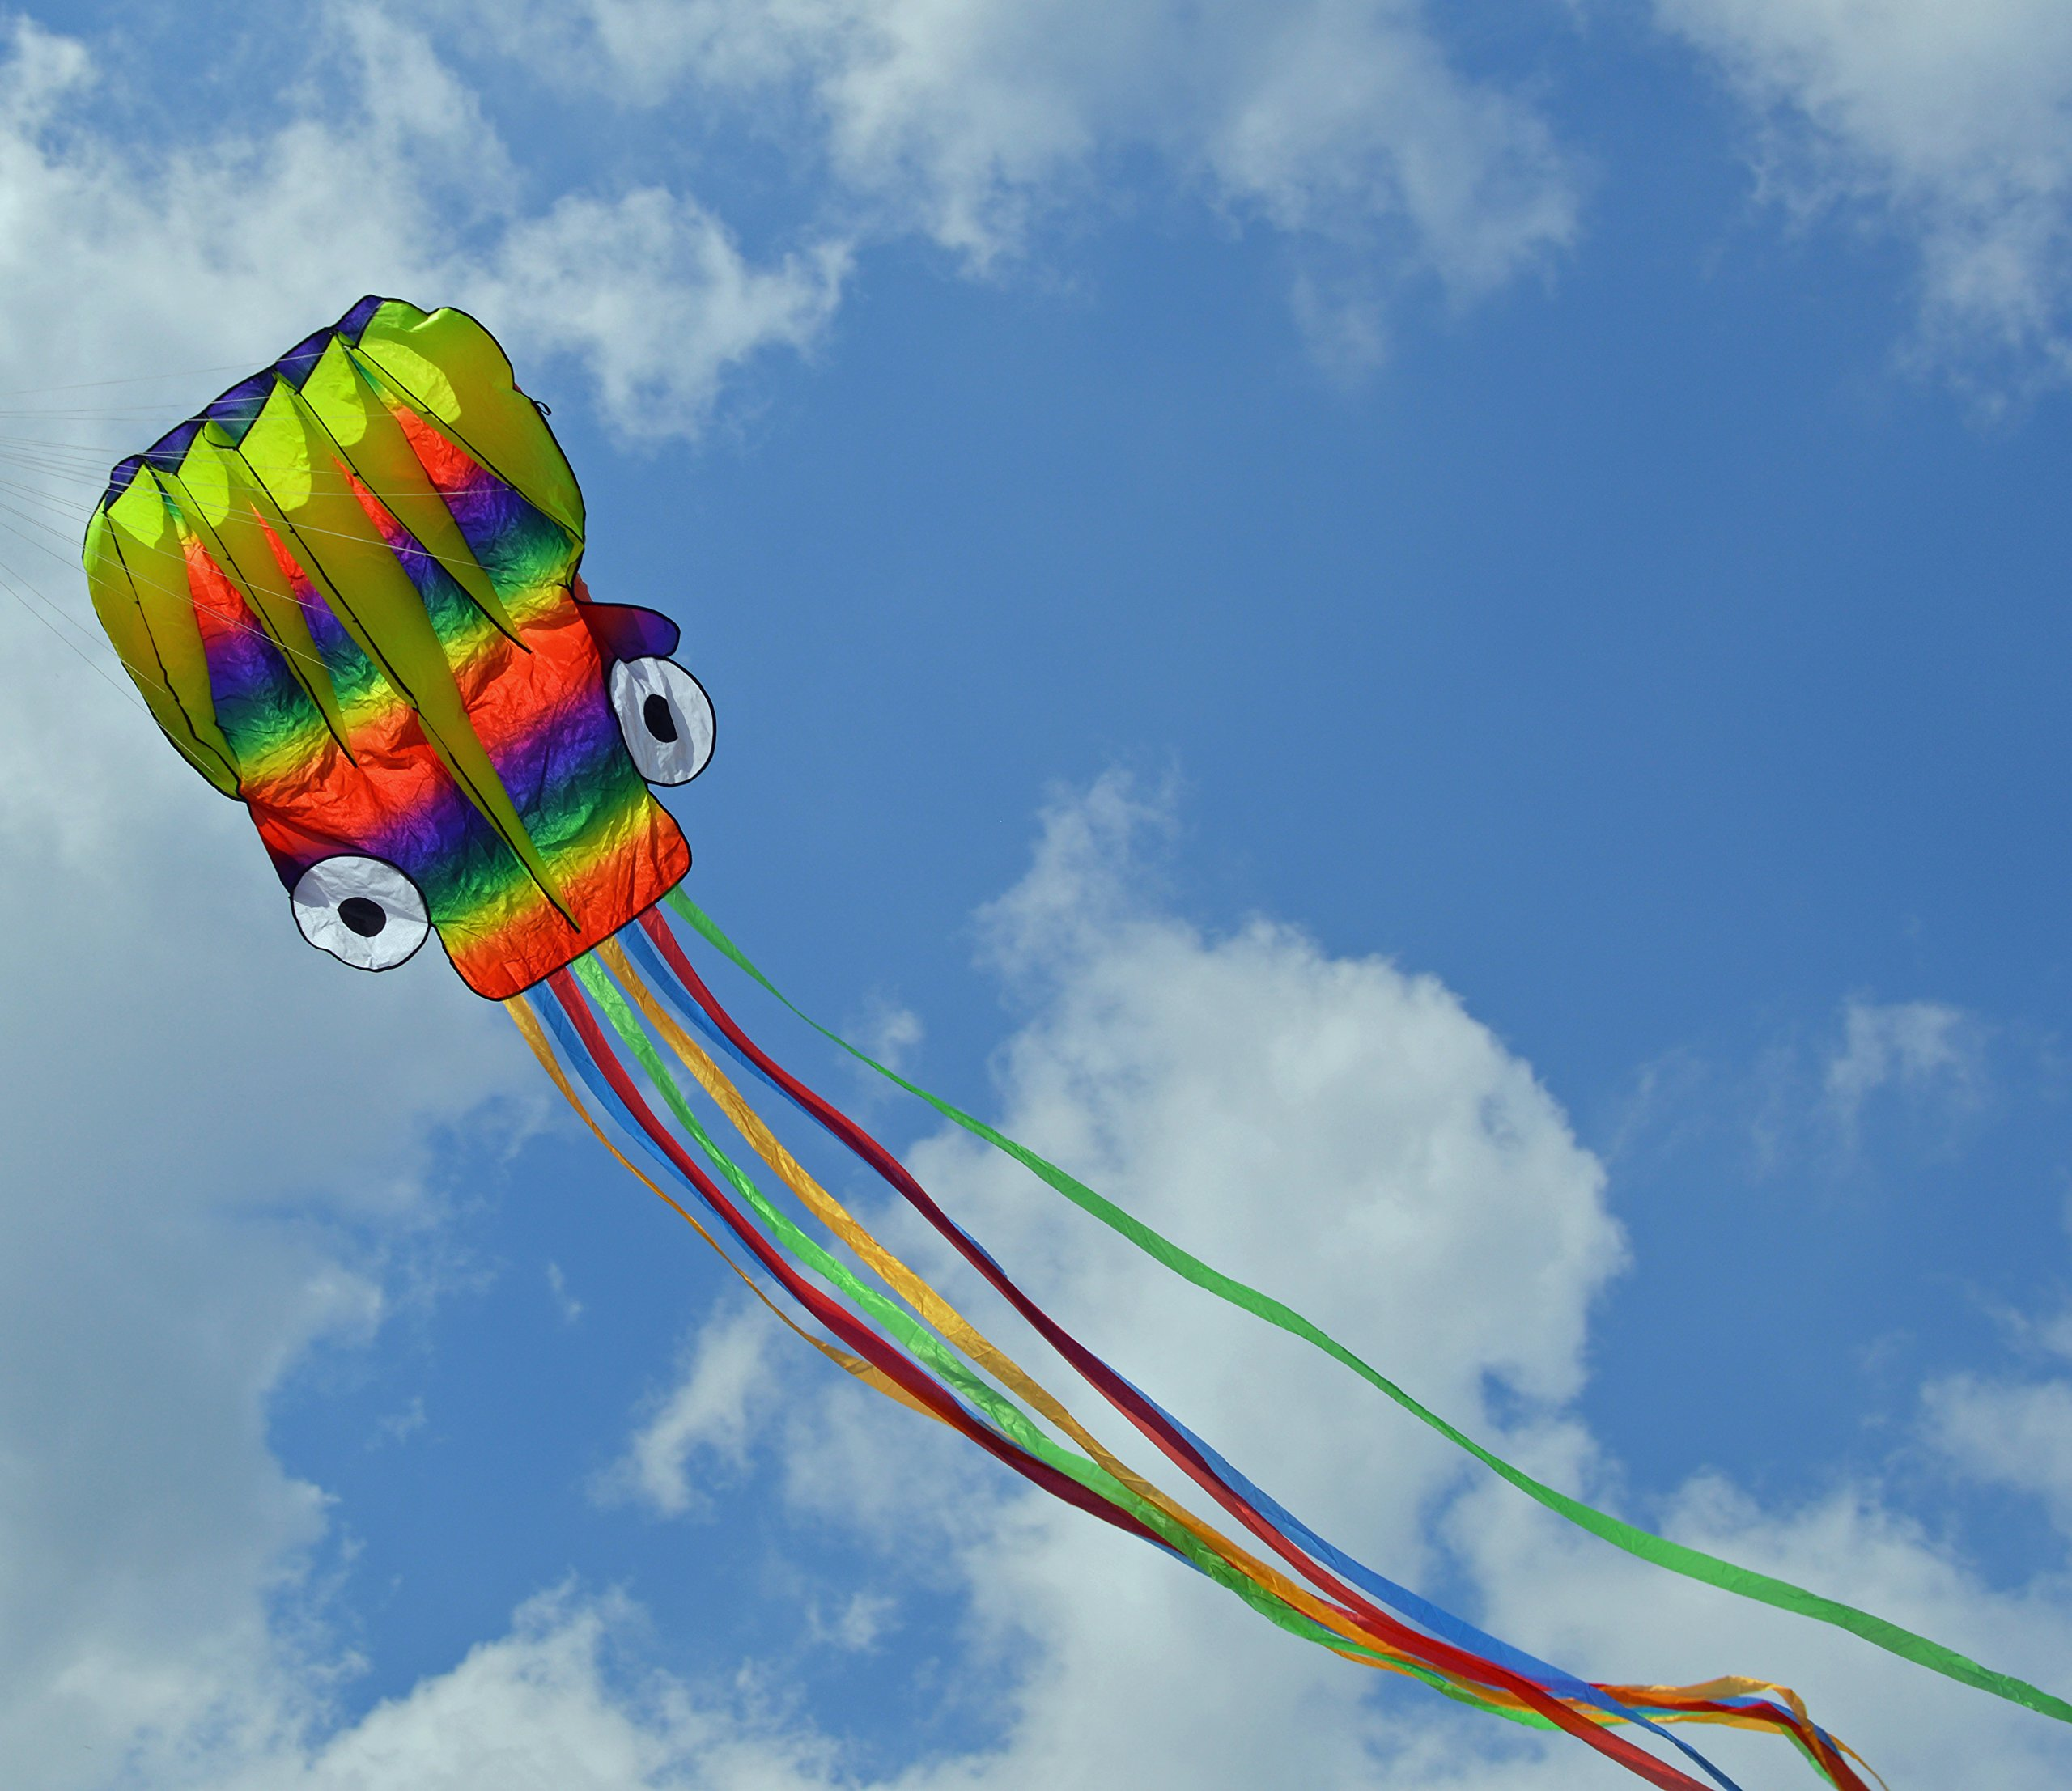 Weifang New Sky Kites Frameless Parafoil Large Rainbow Octopus with String and Handle, Beautiful colors in the sky